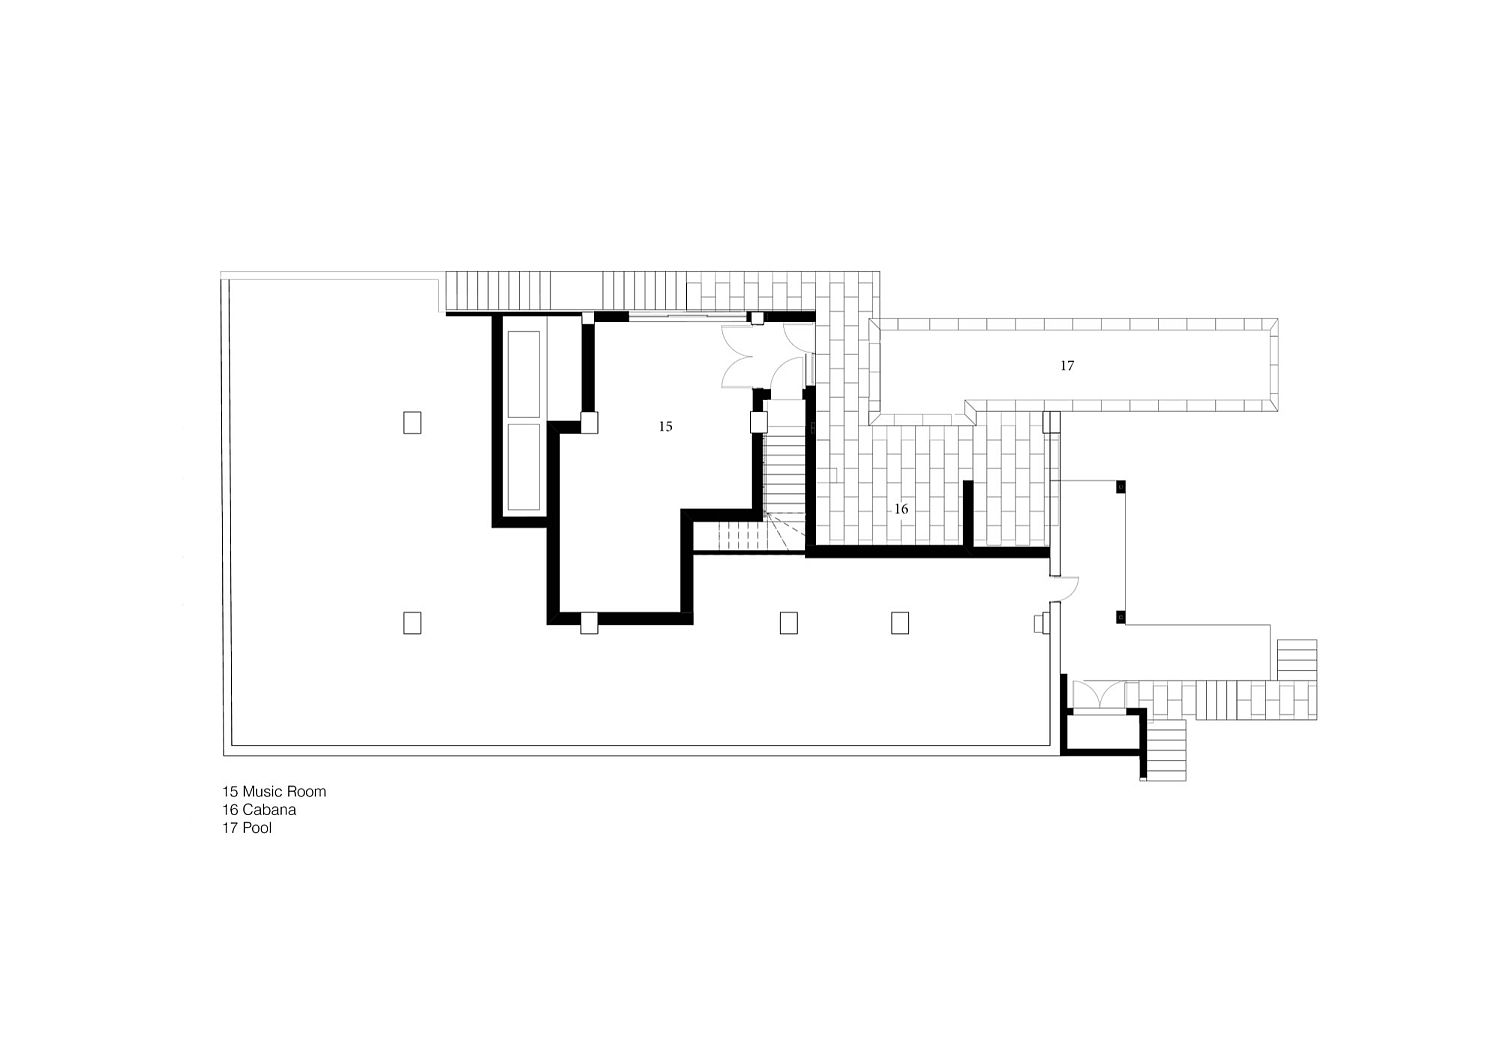 Floor plan of the music room and the pool